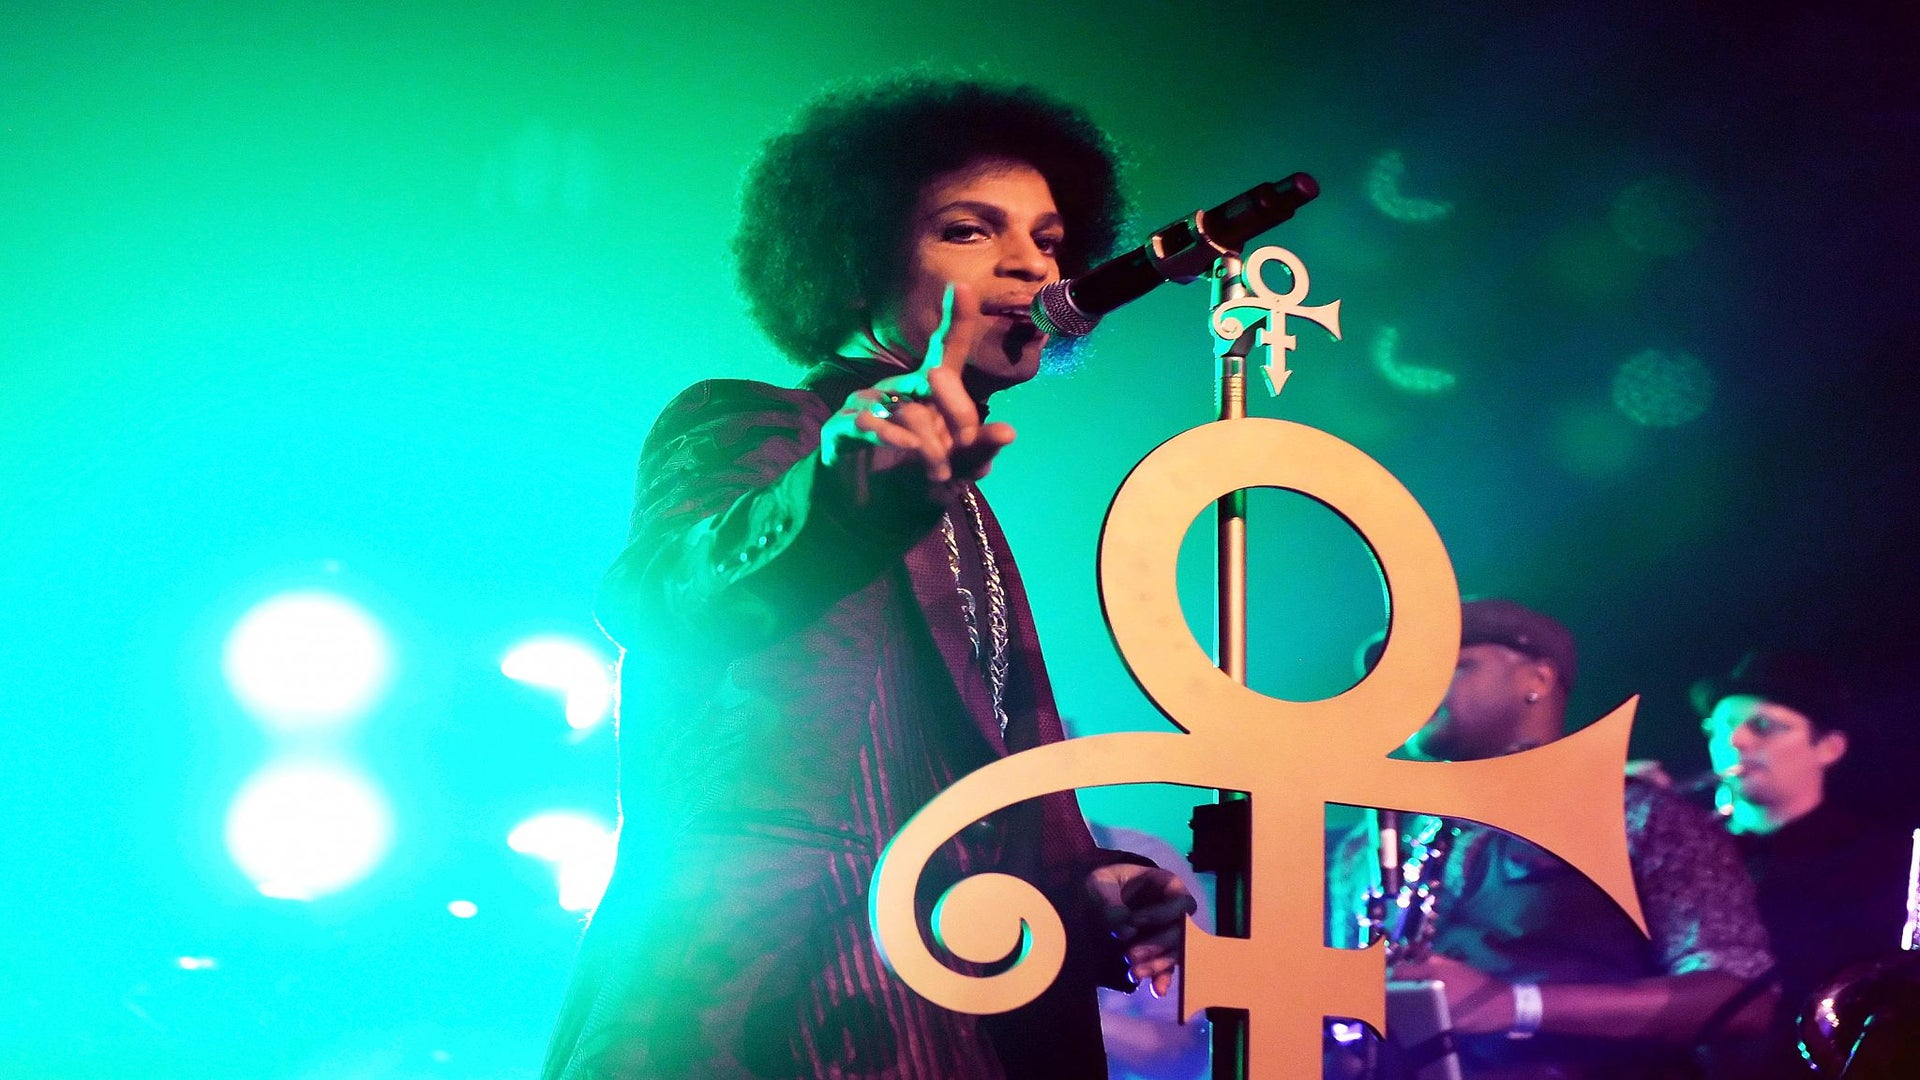 Fans Share Video Footage From Prince's Final Major Concert in Atlanta